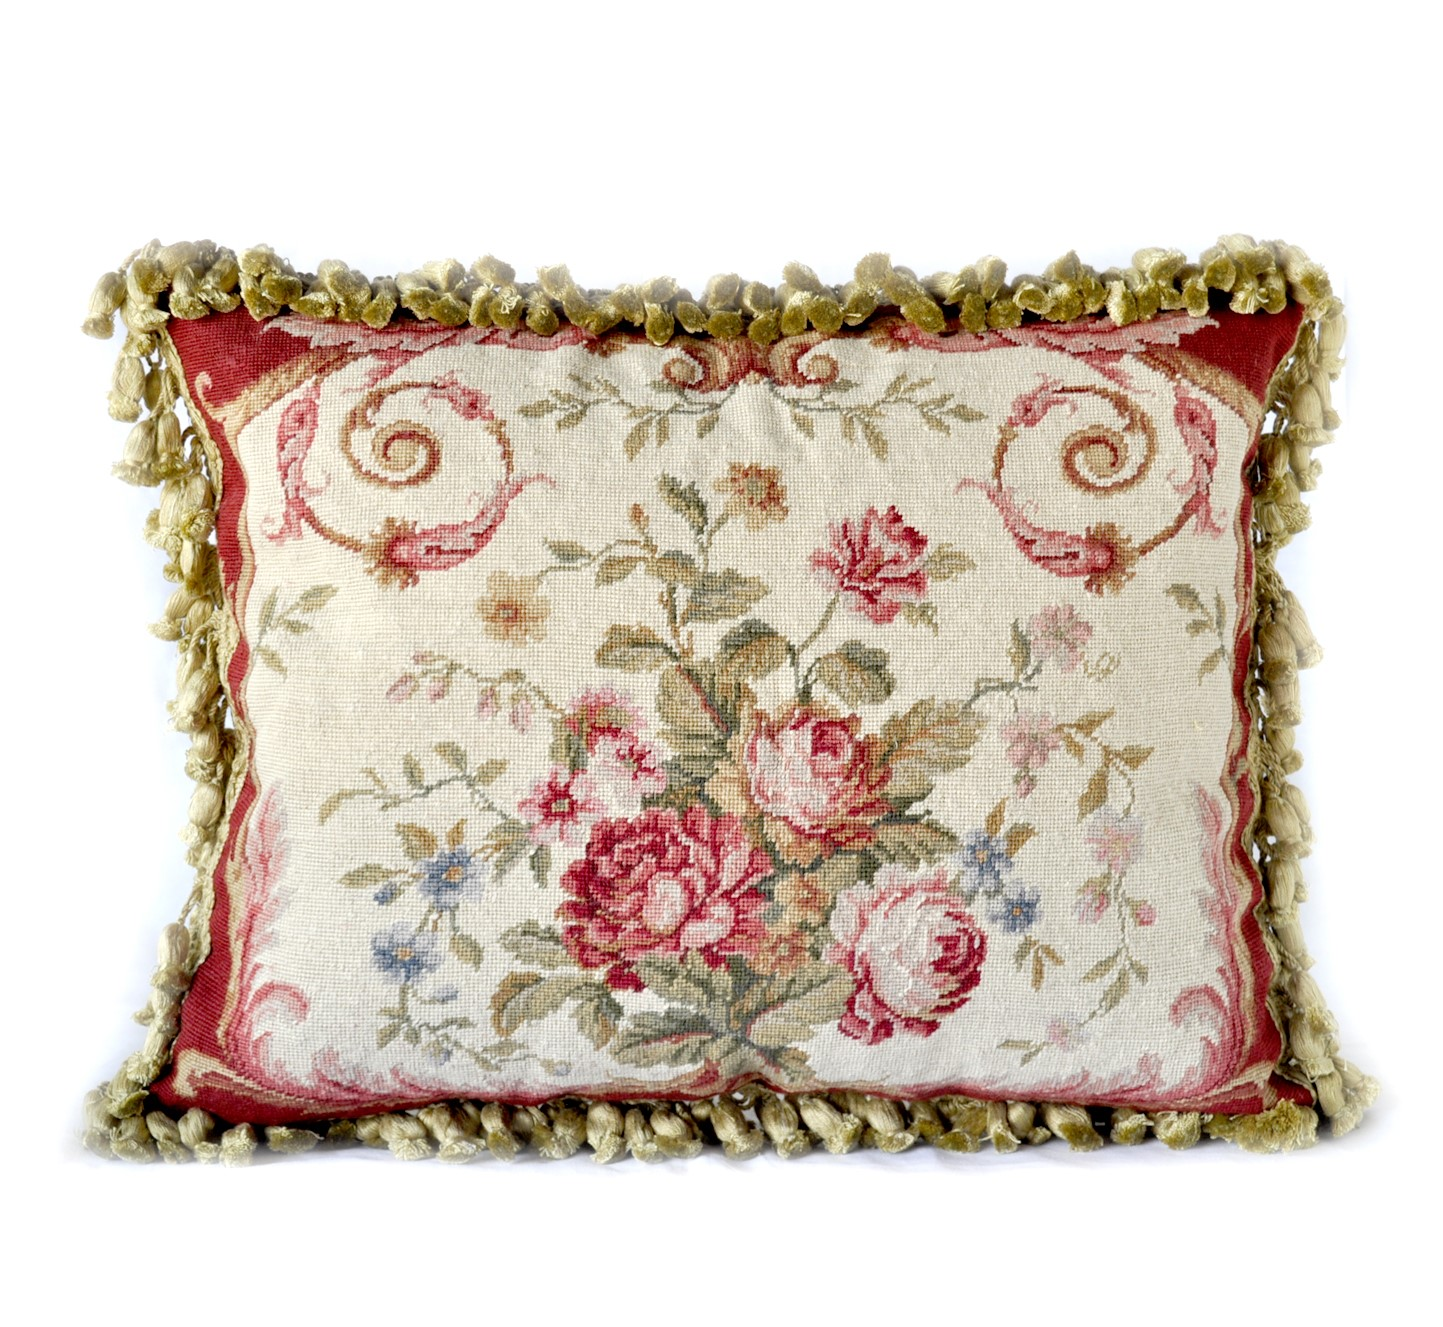 16″x20″ Needlepoint Rose Bouquet Pillow Cover 12980973